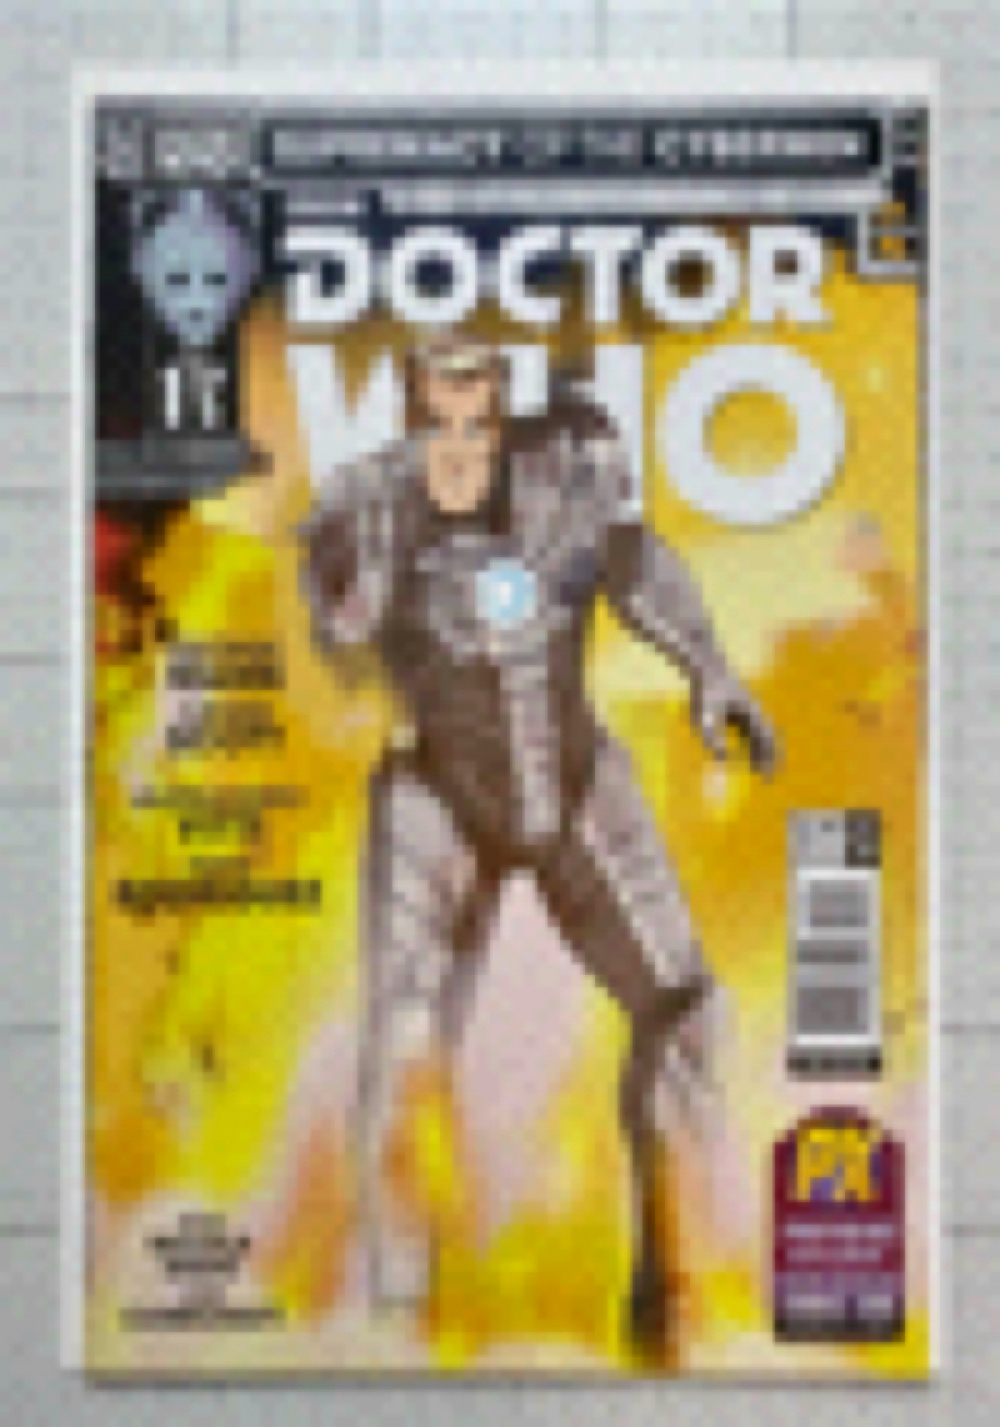 Primary image for Doctor Who Supremacy Of The Cybermen #1 2016 Titan [SDCC Variant] (High Grade)